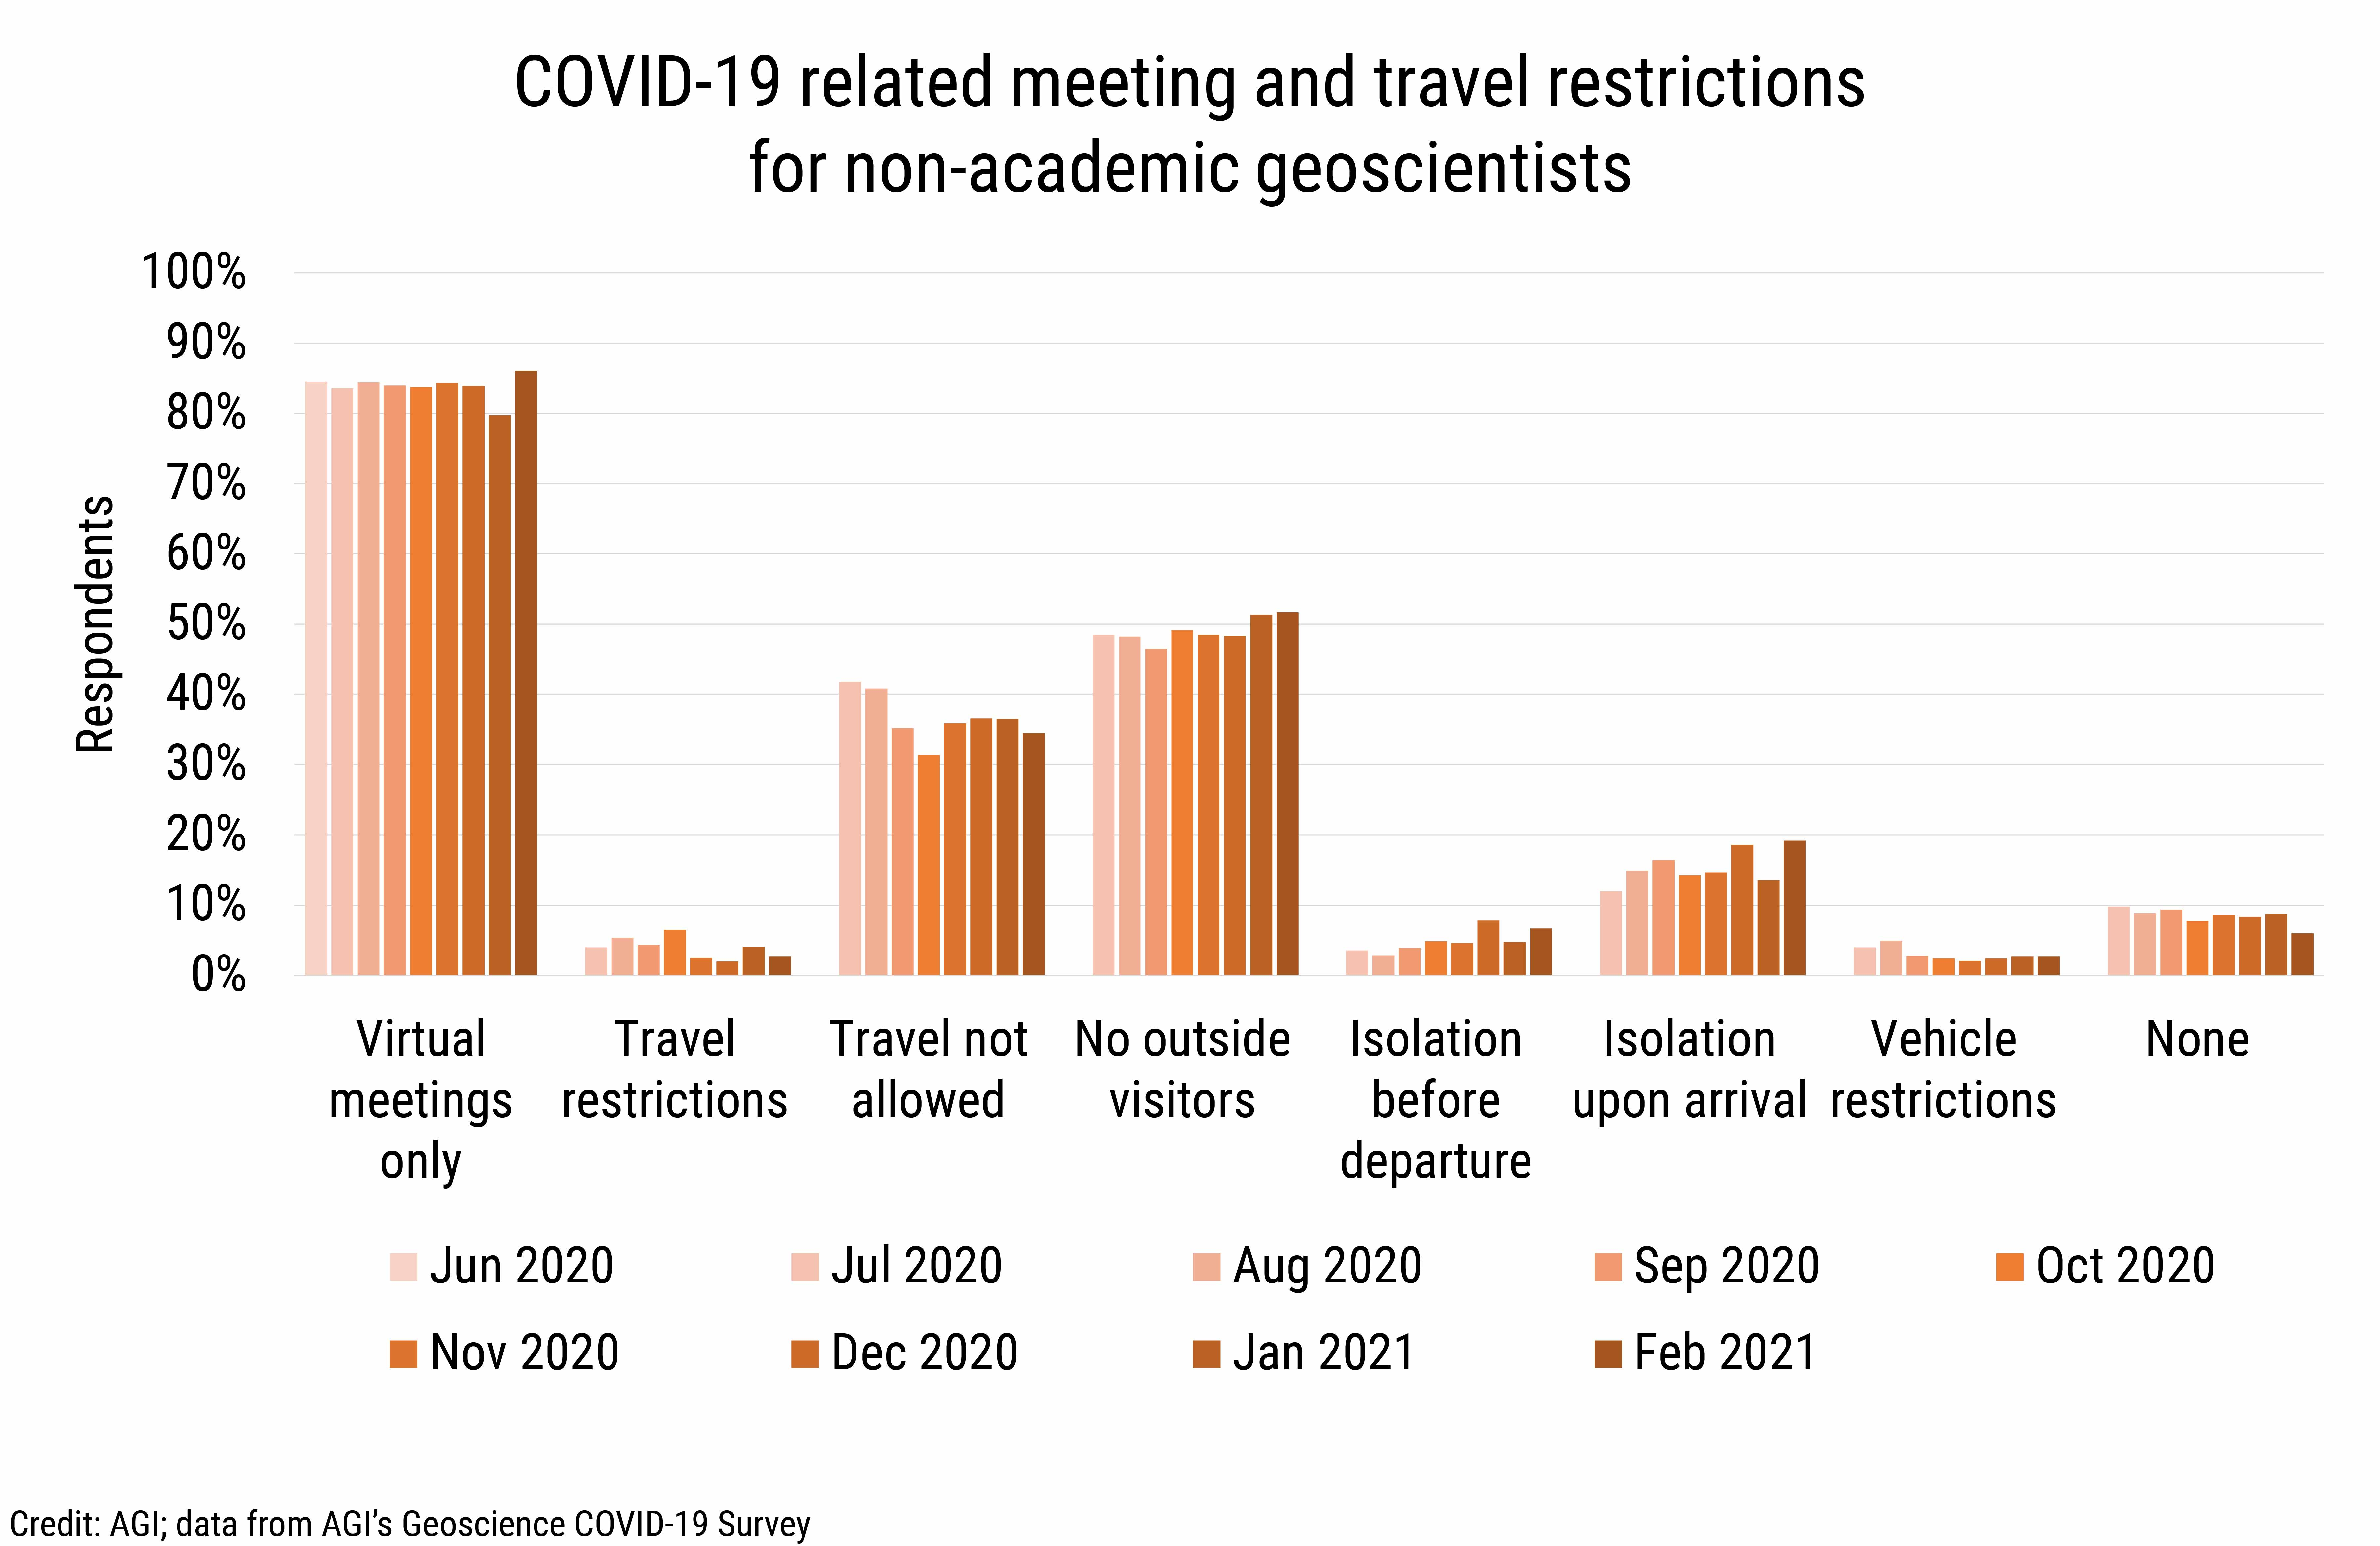 DB_2021-008 chart 04: COVID-19 related meeting and travel restrictions for non-academic geoscientists (Credit: AGI; data from AGI's Geoscience COVID-19 Survey)